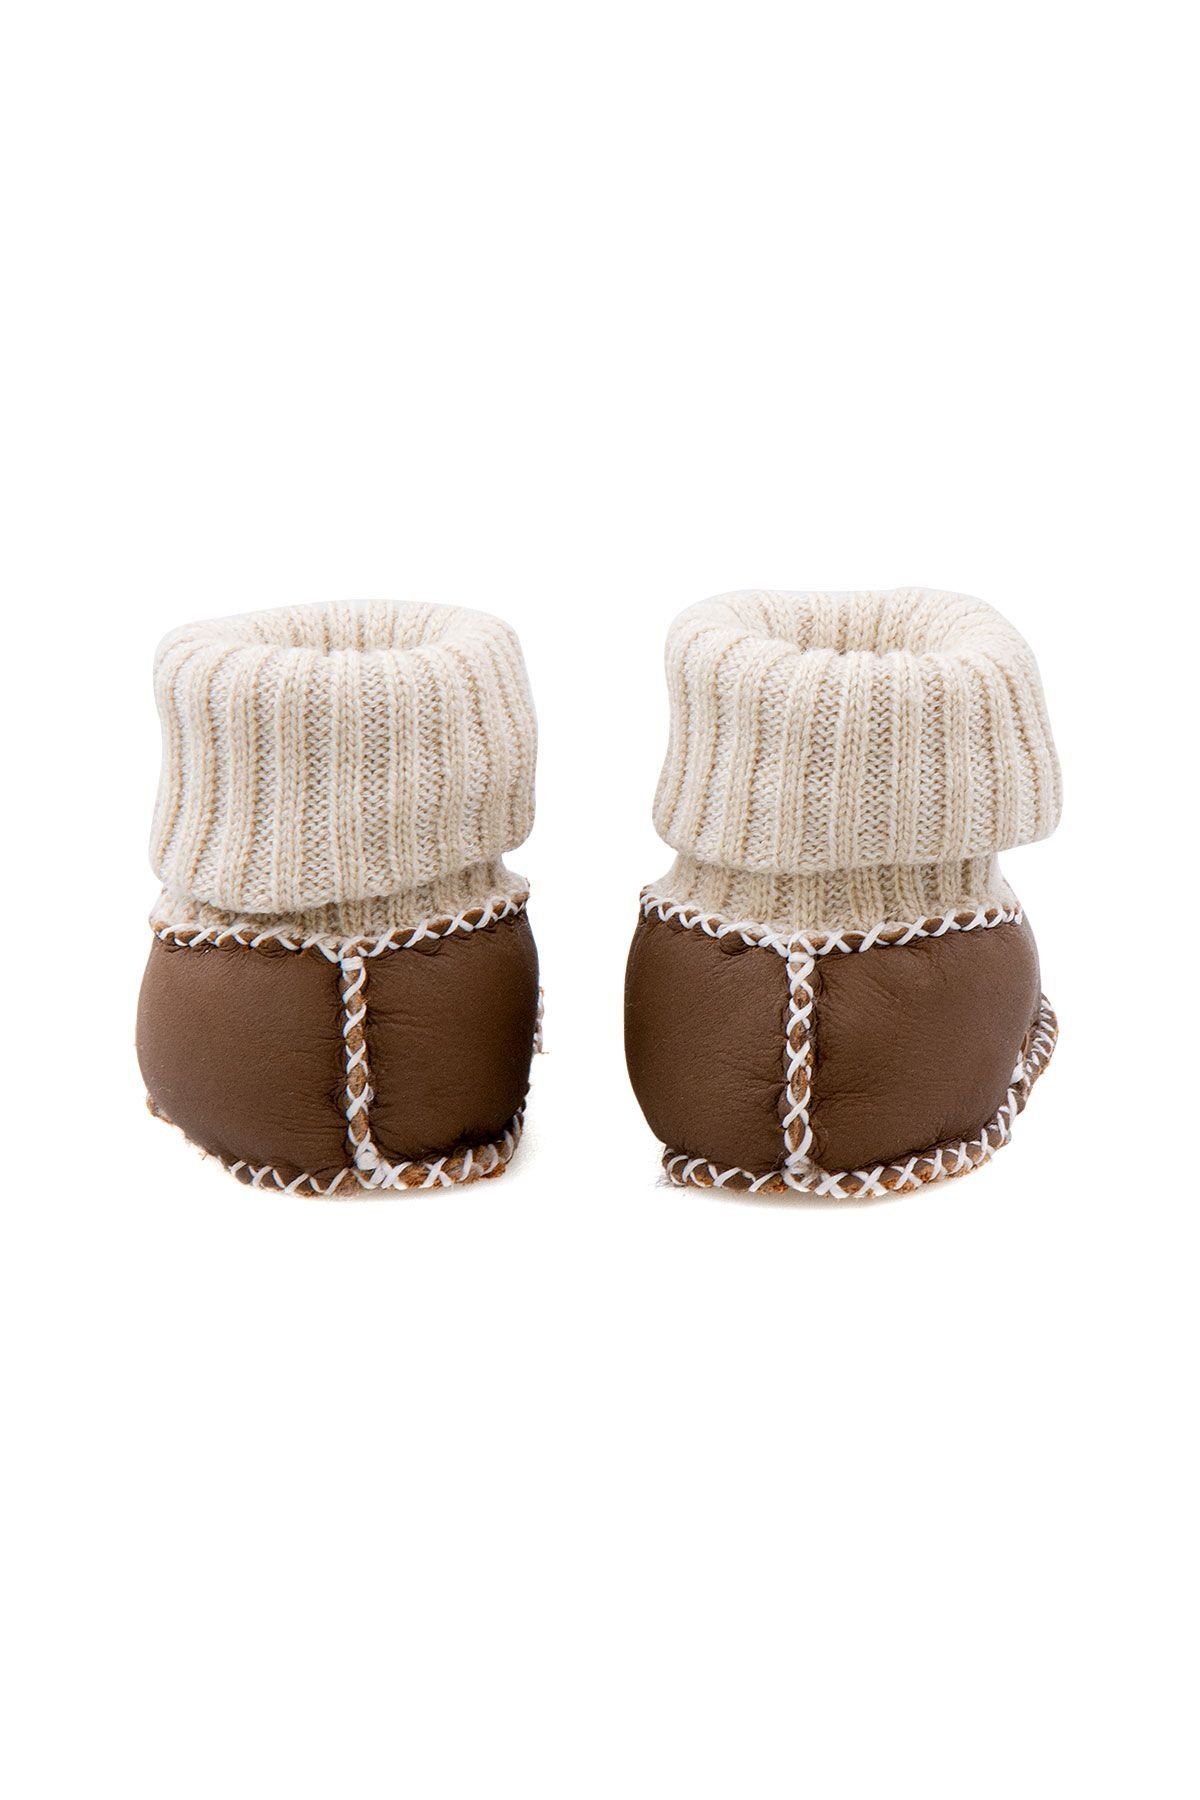 Pegia Shearling Baby's Booties With Socks 141107 Brown